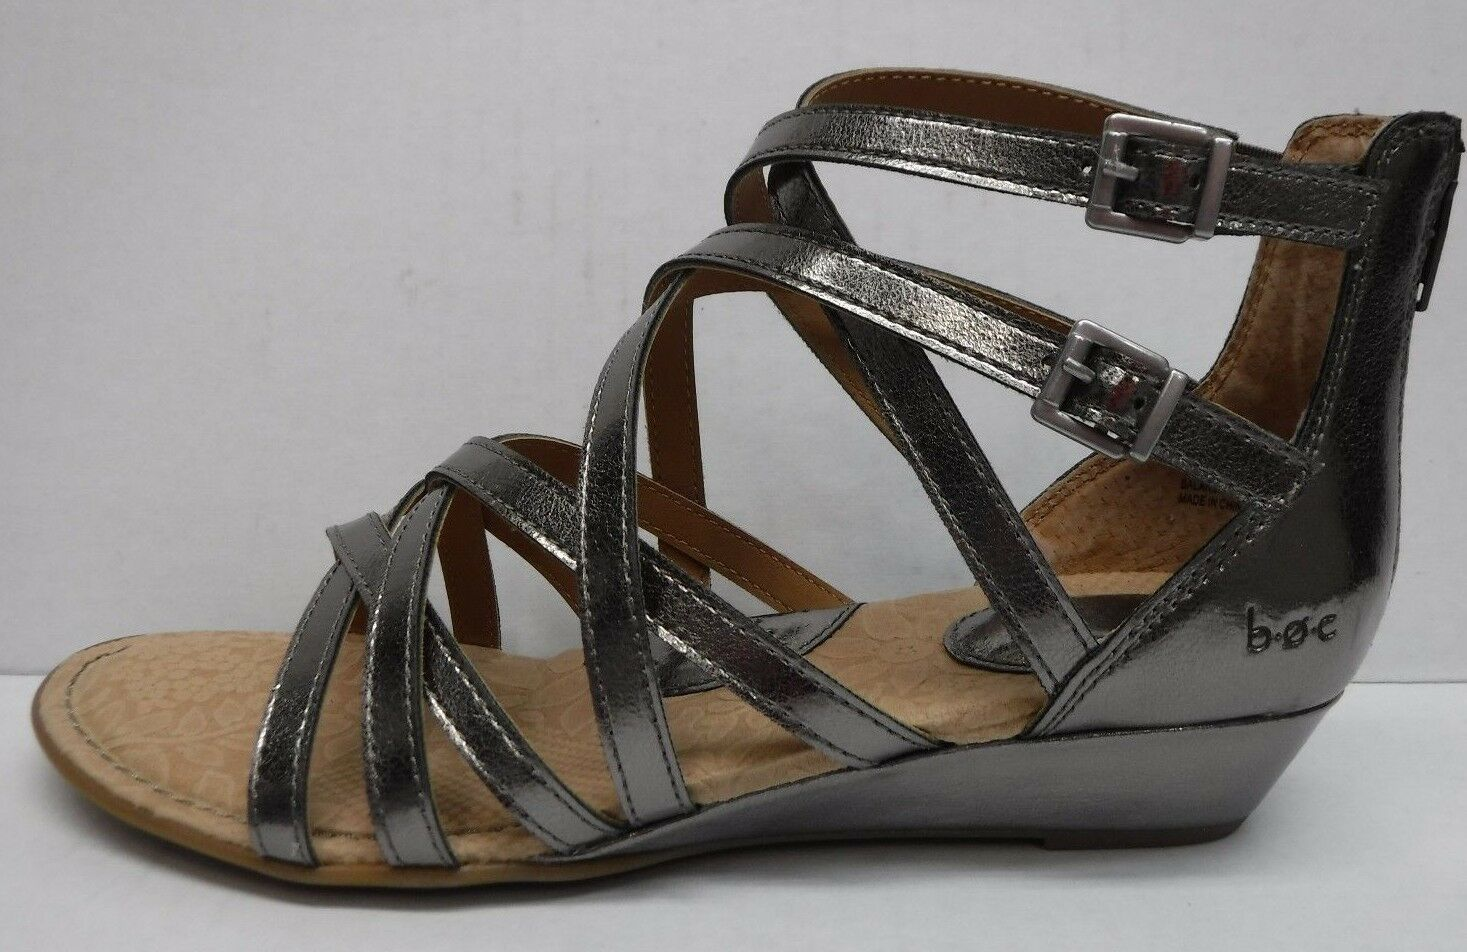 B.o.c Born Concepts Size 9 Pewter Gladiator Sandals New Womens shoes